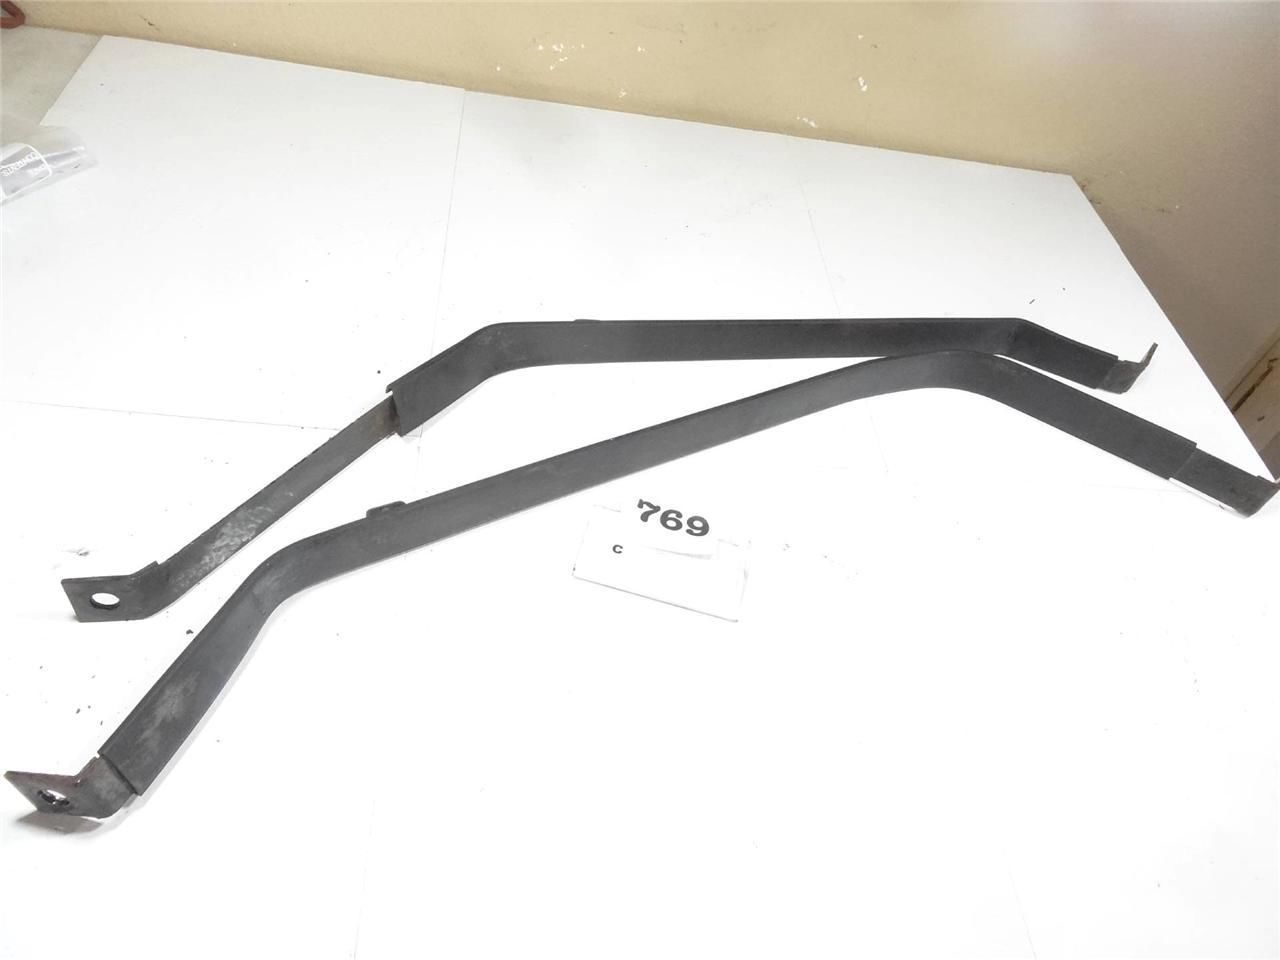 Primary image for 2003-2007 TOYOTA COROLLA FUEL TANK BRACKET OEM C769 see broken screws